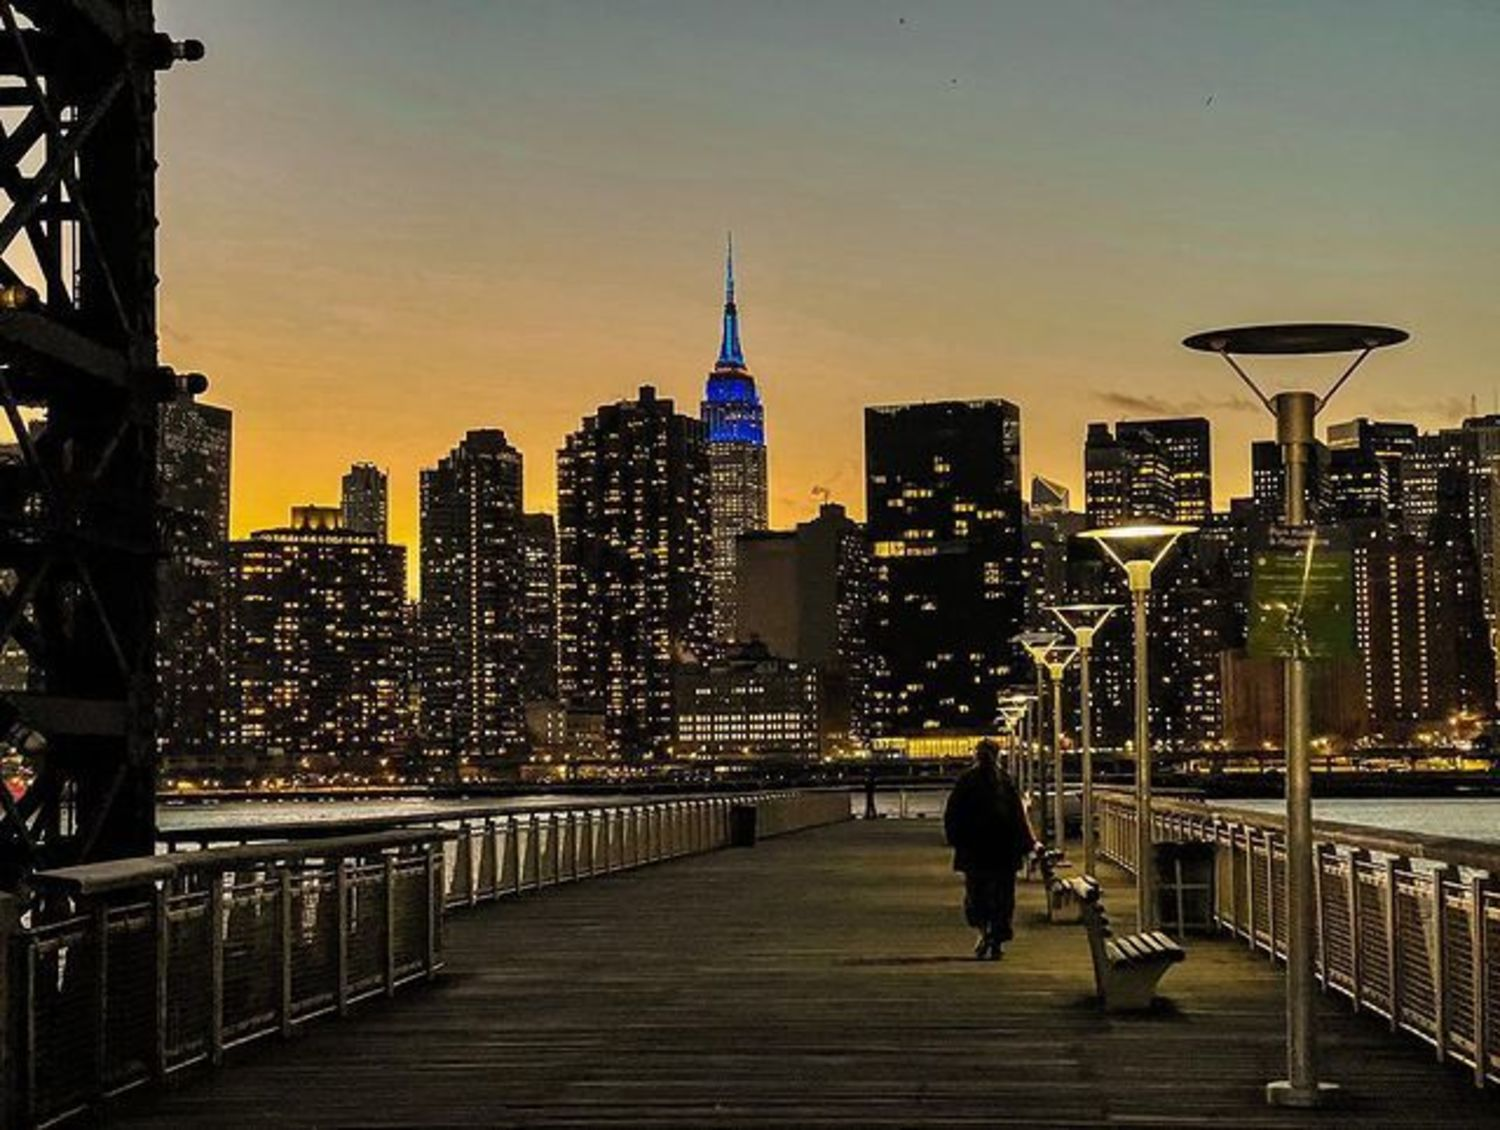 Midtown Manhattan Skyline from Long Island City, Queens